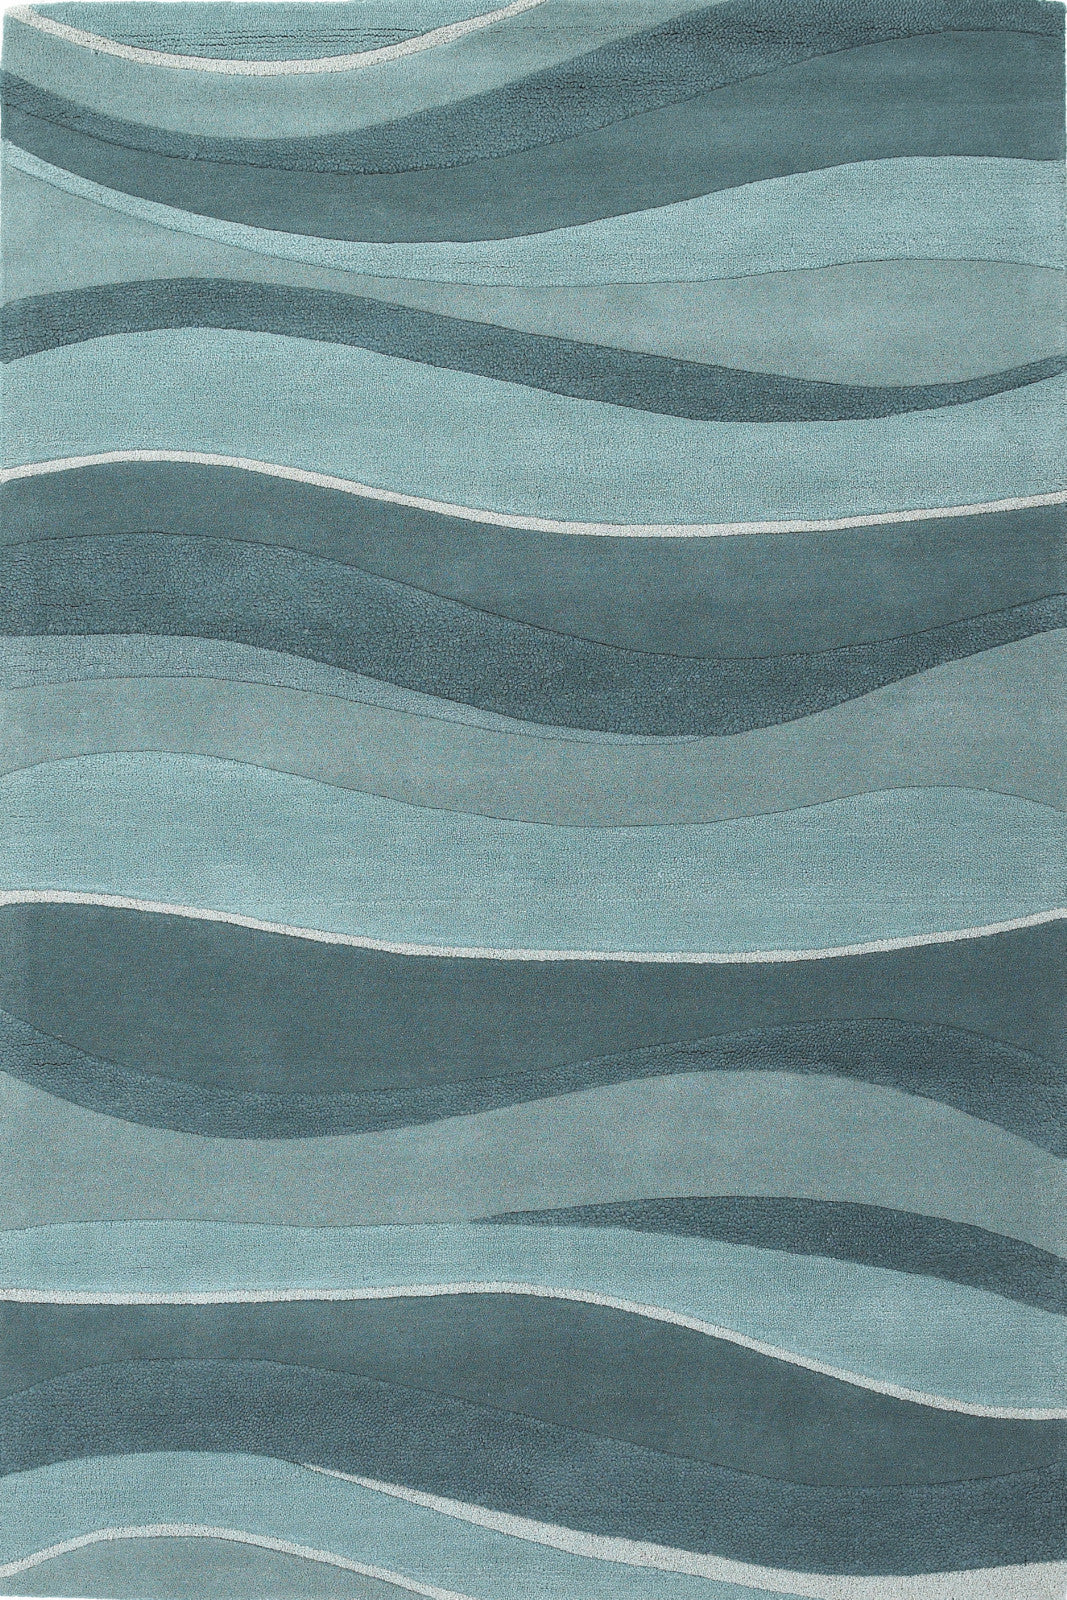 KAS Eternity 1053 Ocean Landscapes Hand Tufted Area Rug